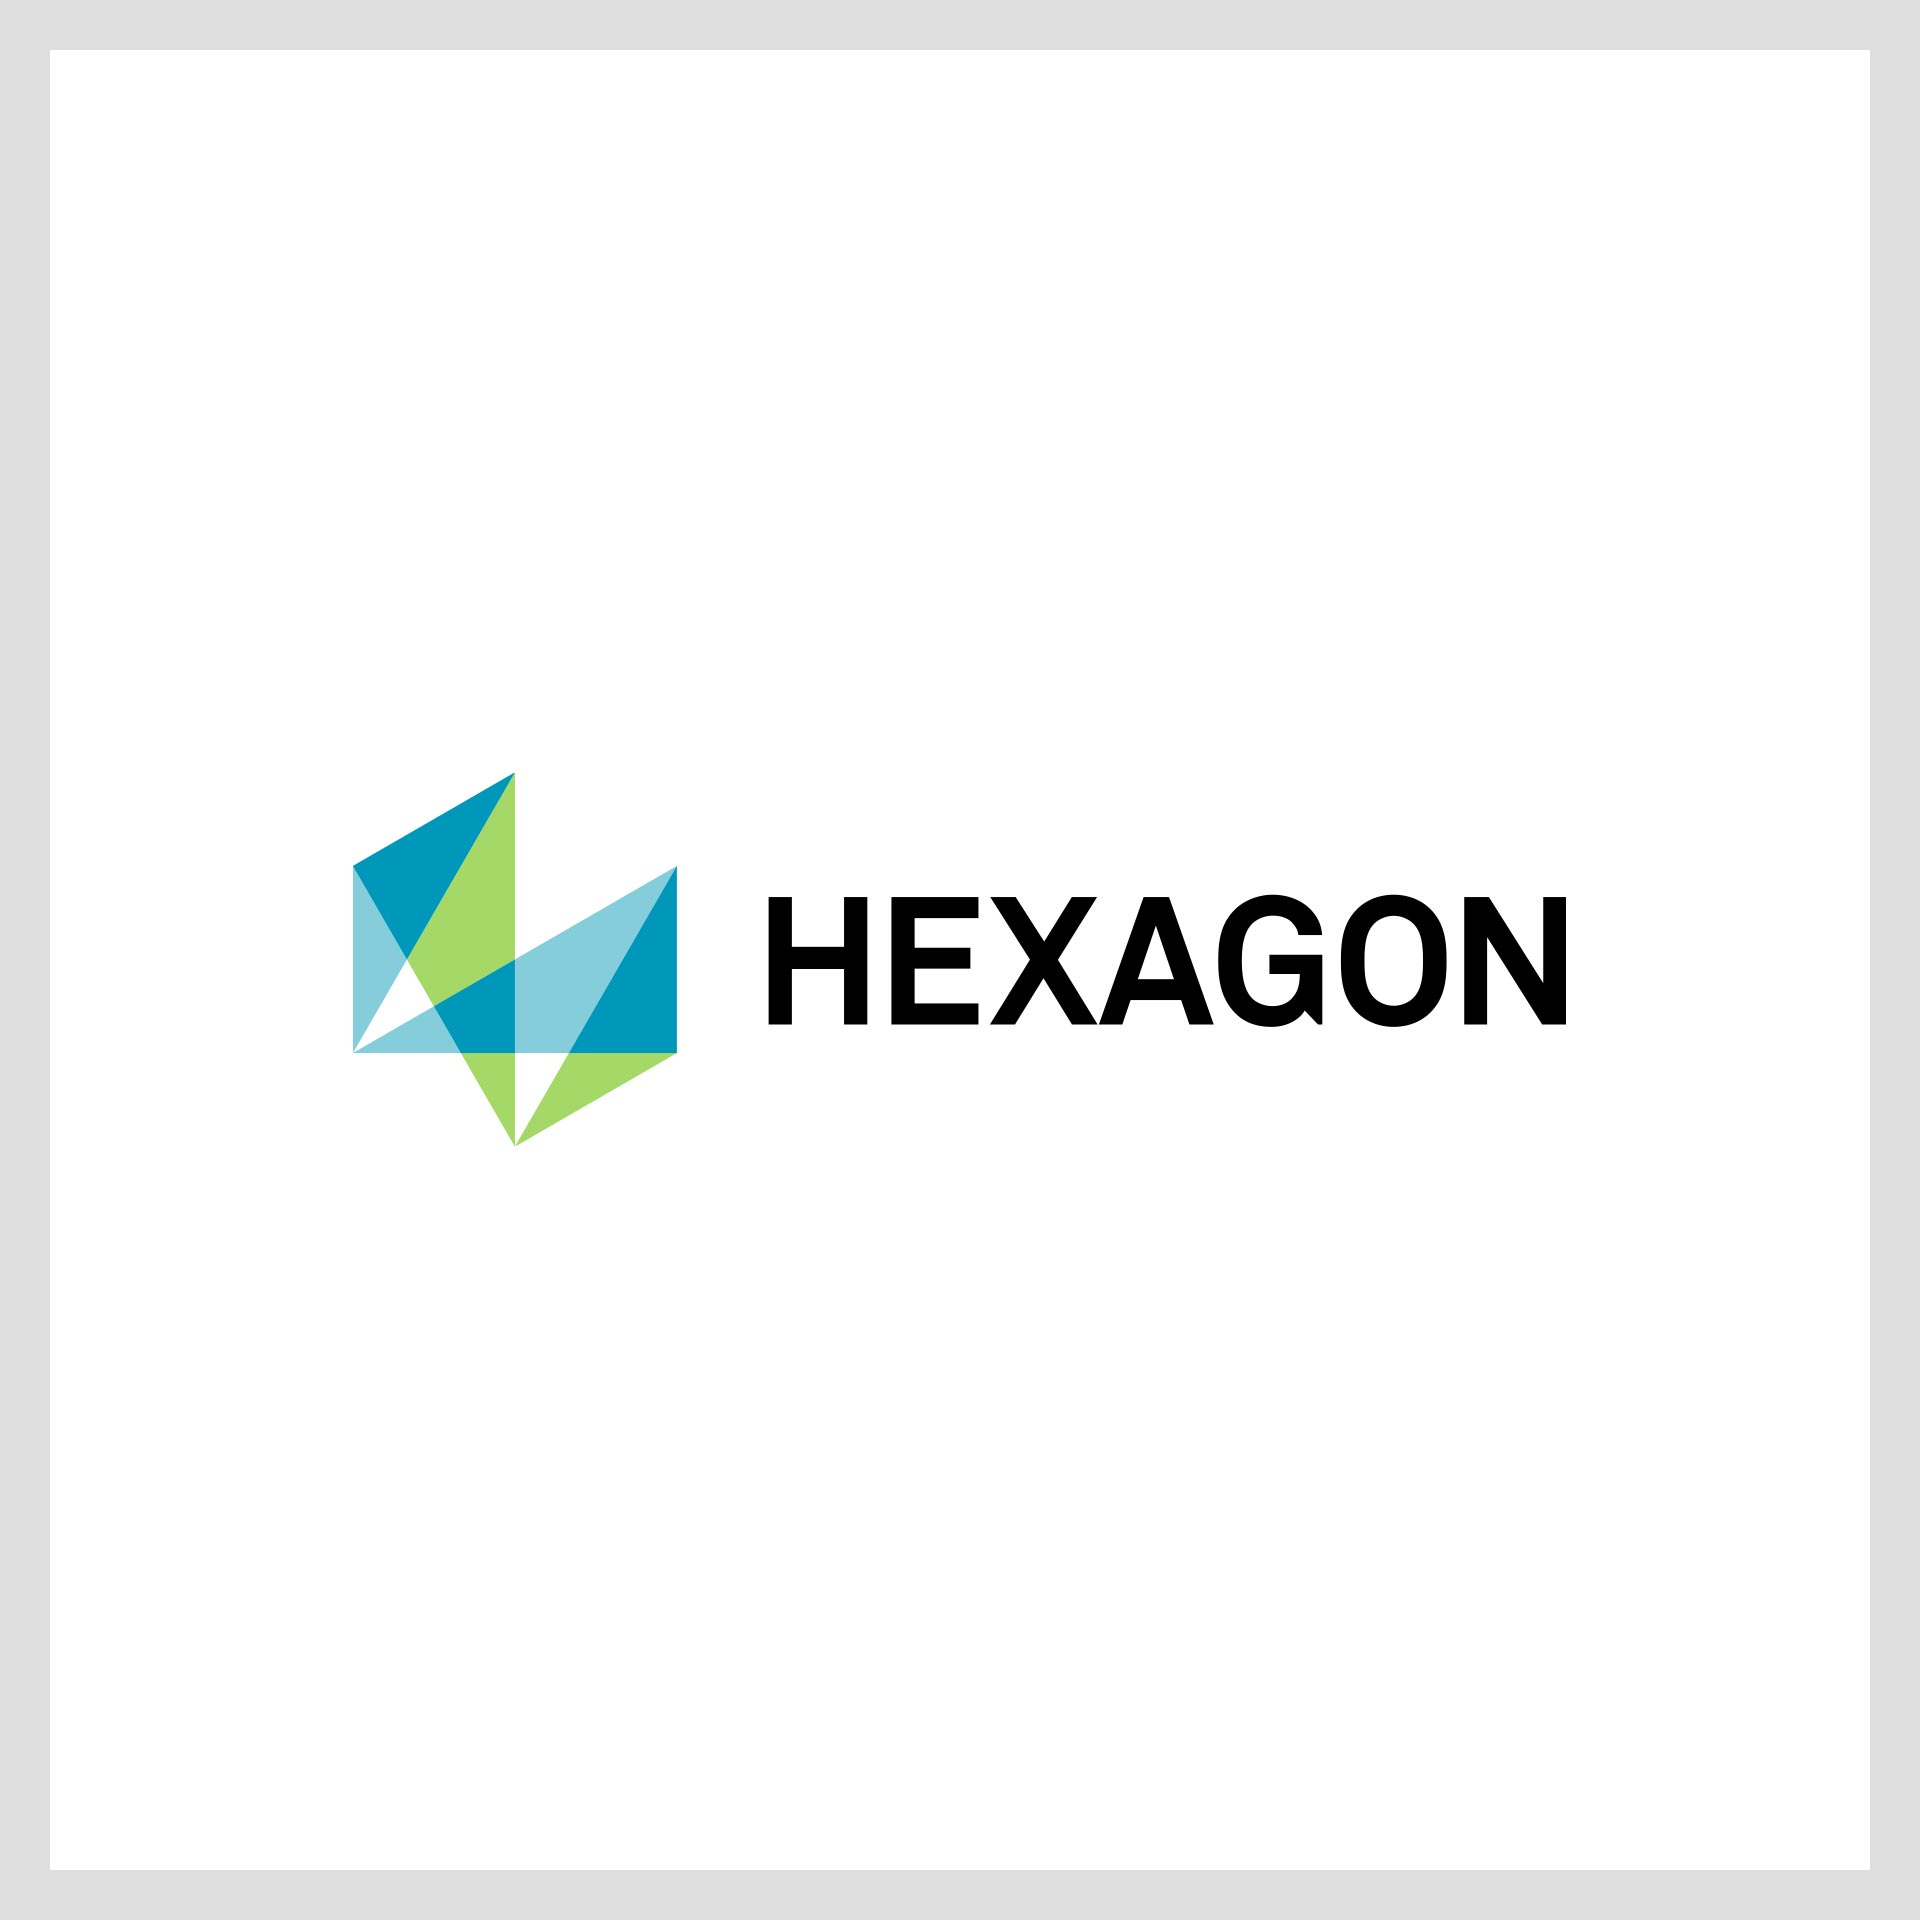 Hexagon technologie